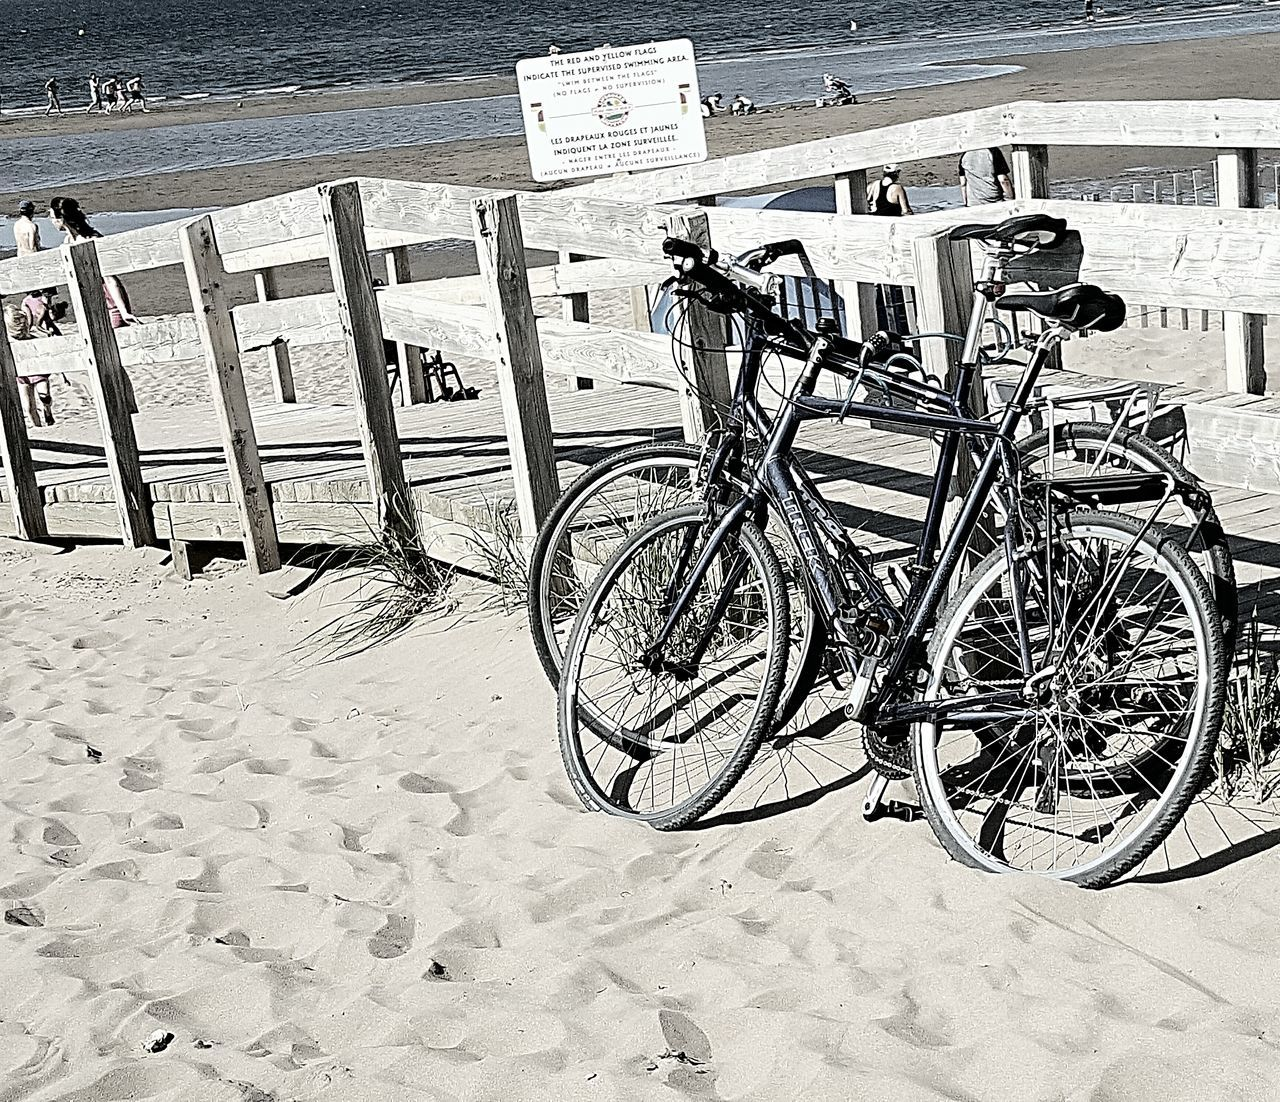 sand, beach, bicycle, day, outdoors, sea, transportation, no people, bicycle rack